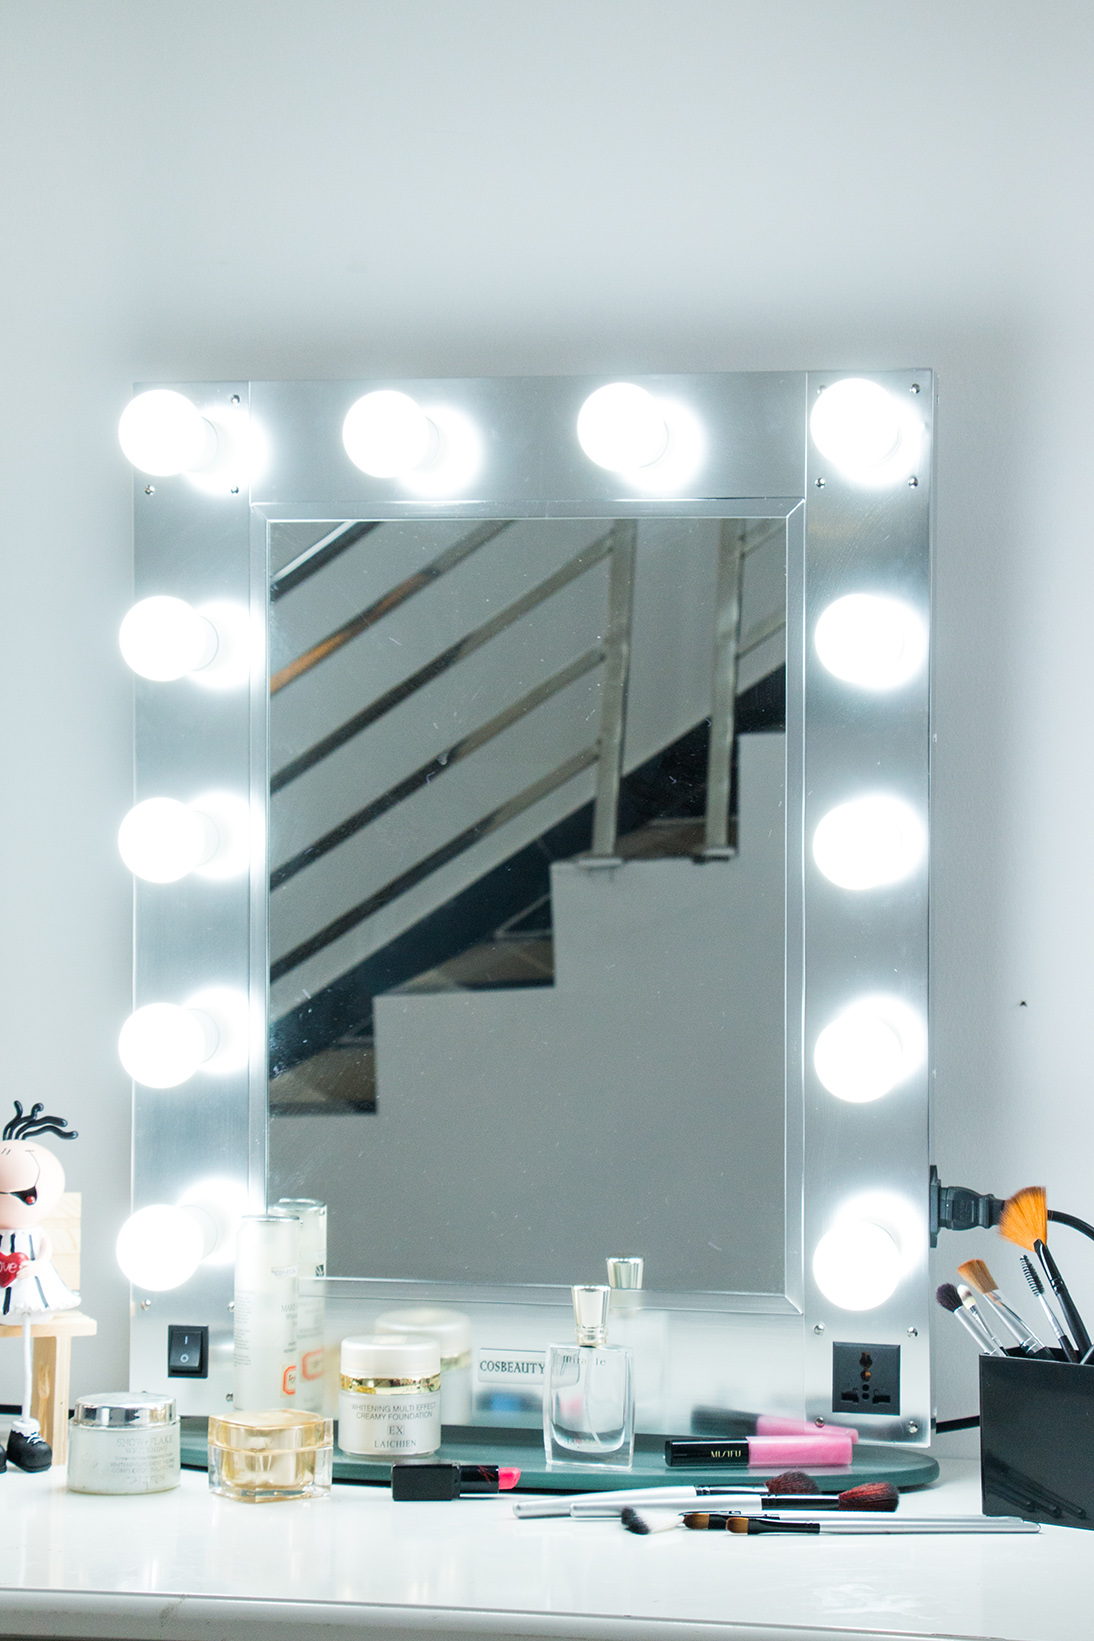 Professional lighting makeup mirror wall-mounted lighted makeup mirror with aluminum frame